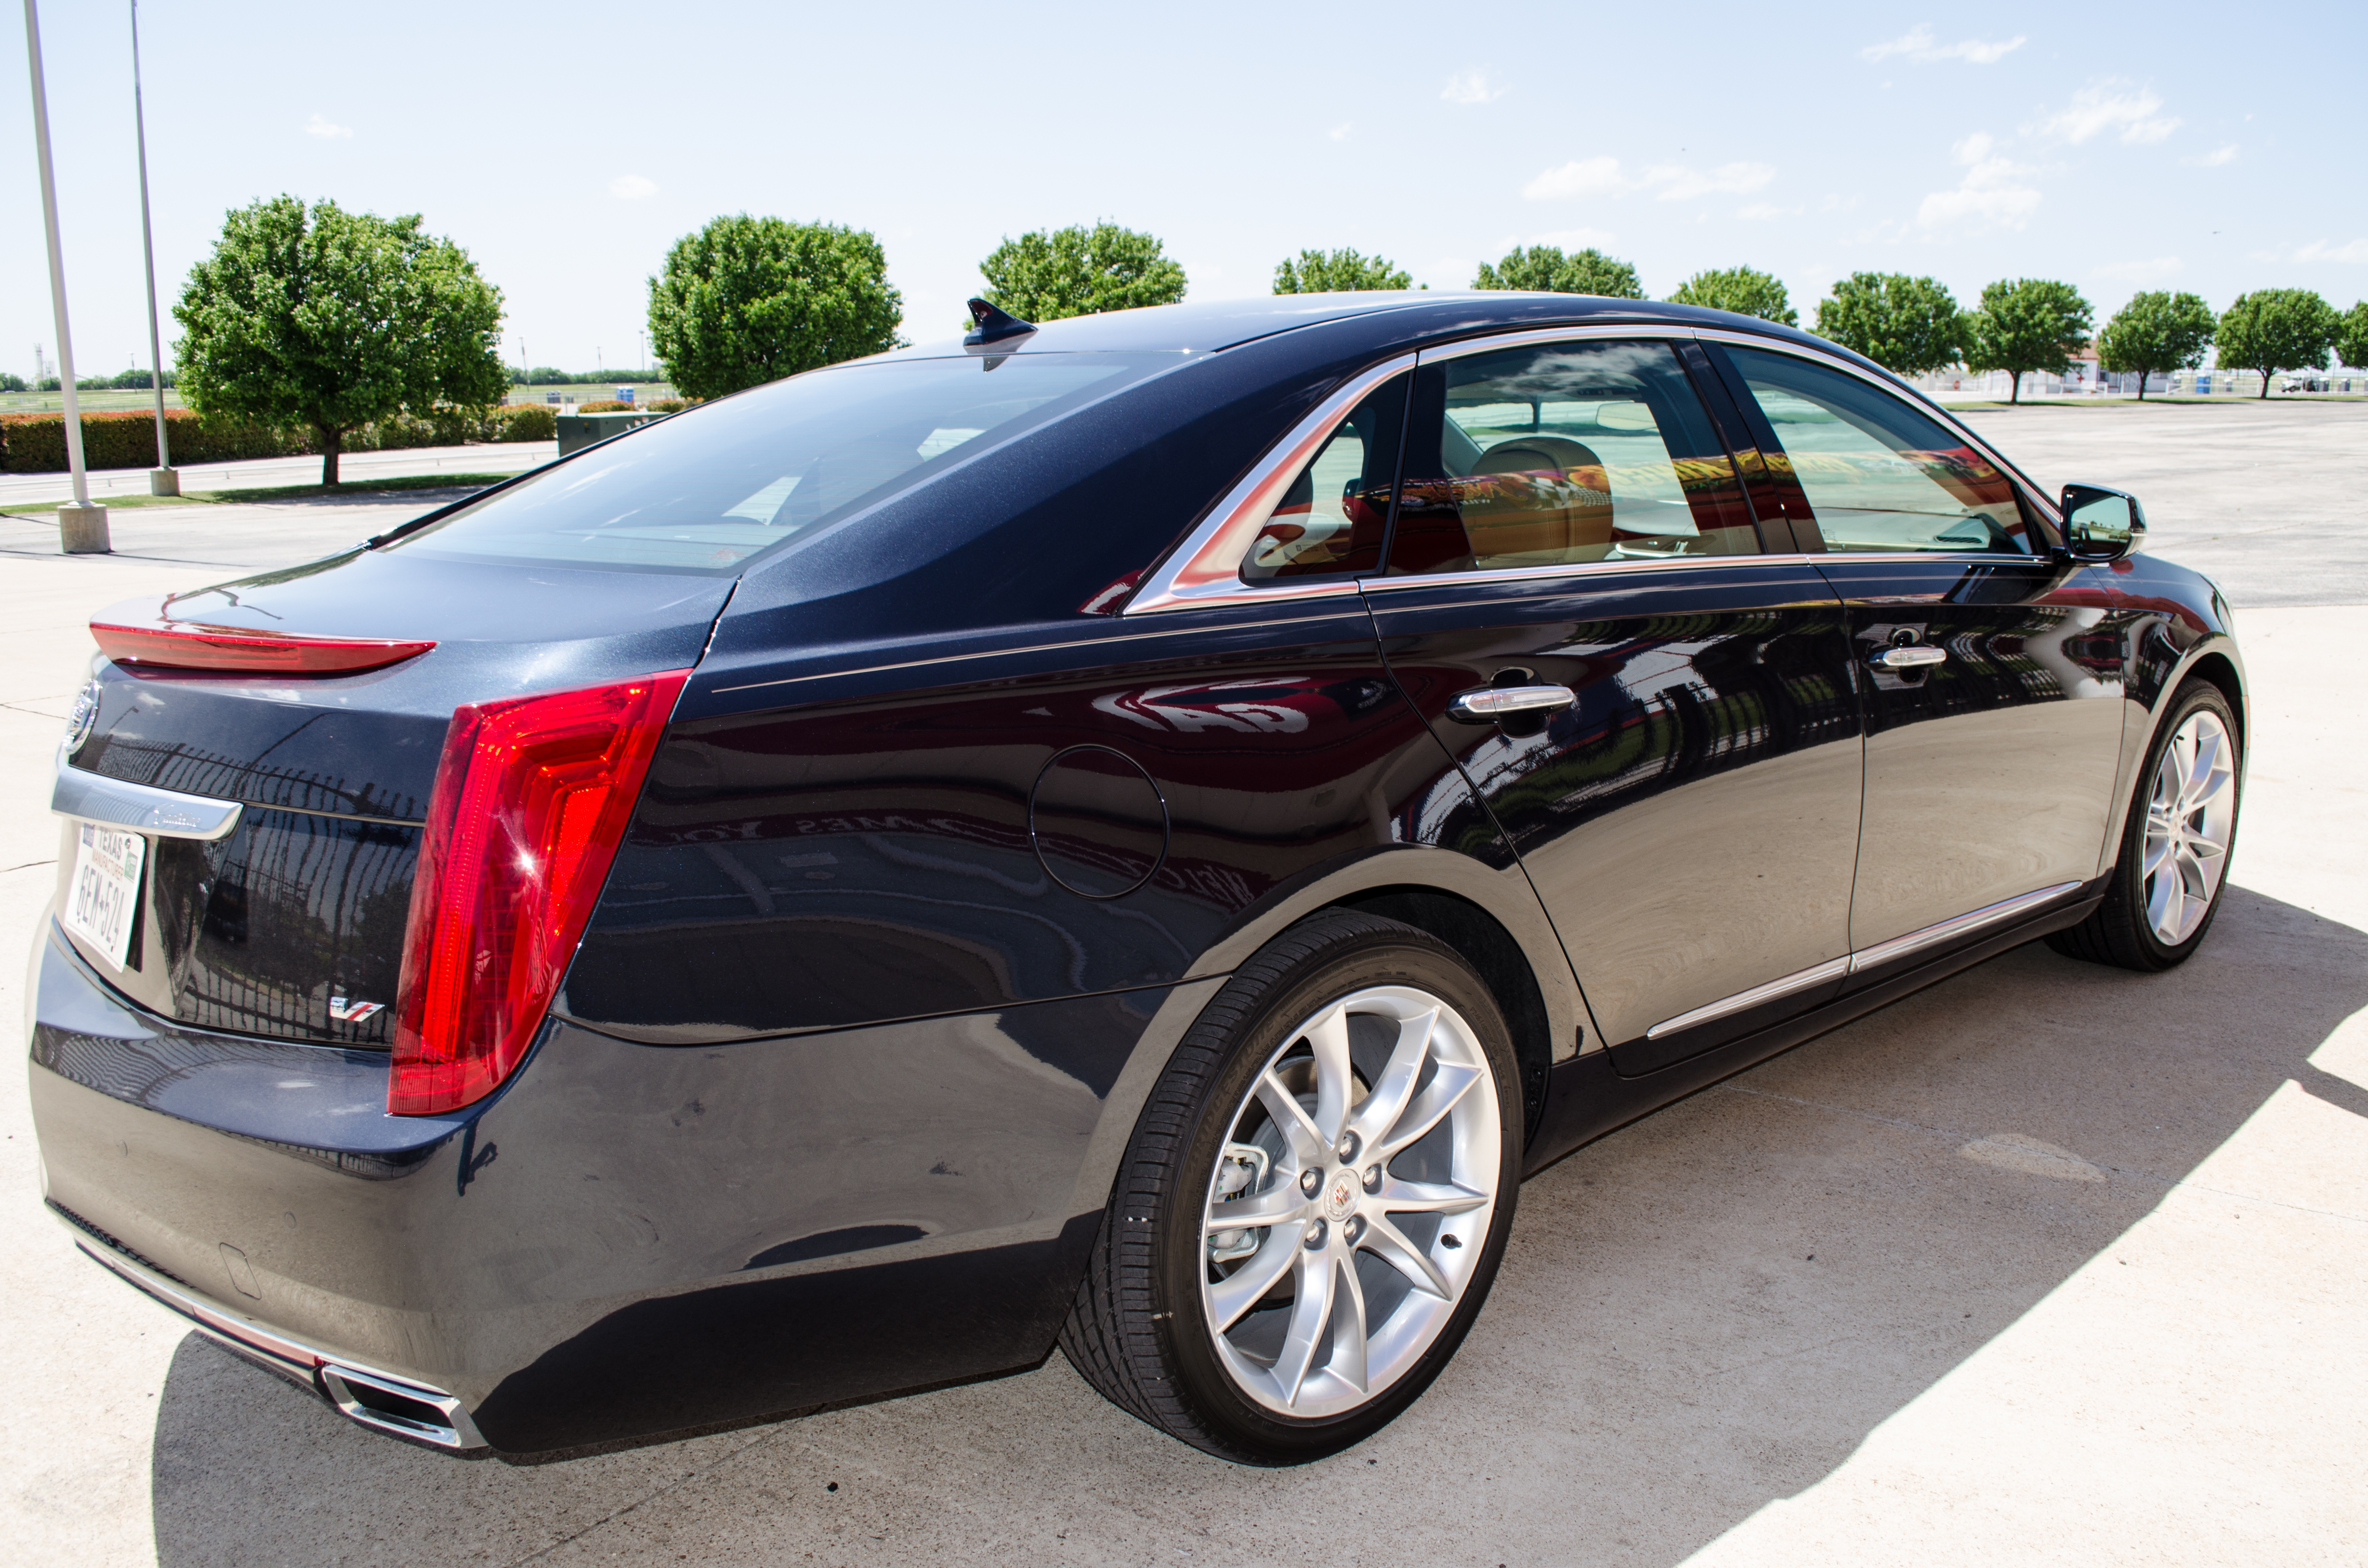 xts cadillac americas go in v sport miles meat best mission deliver sedan bangshiftapex we to com bangshift bacon